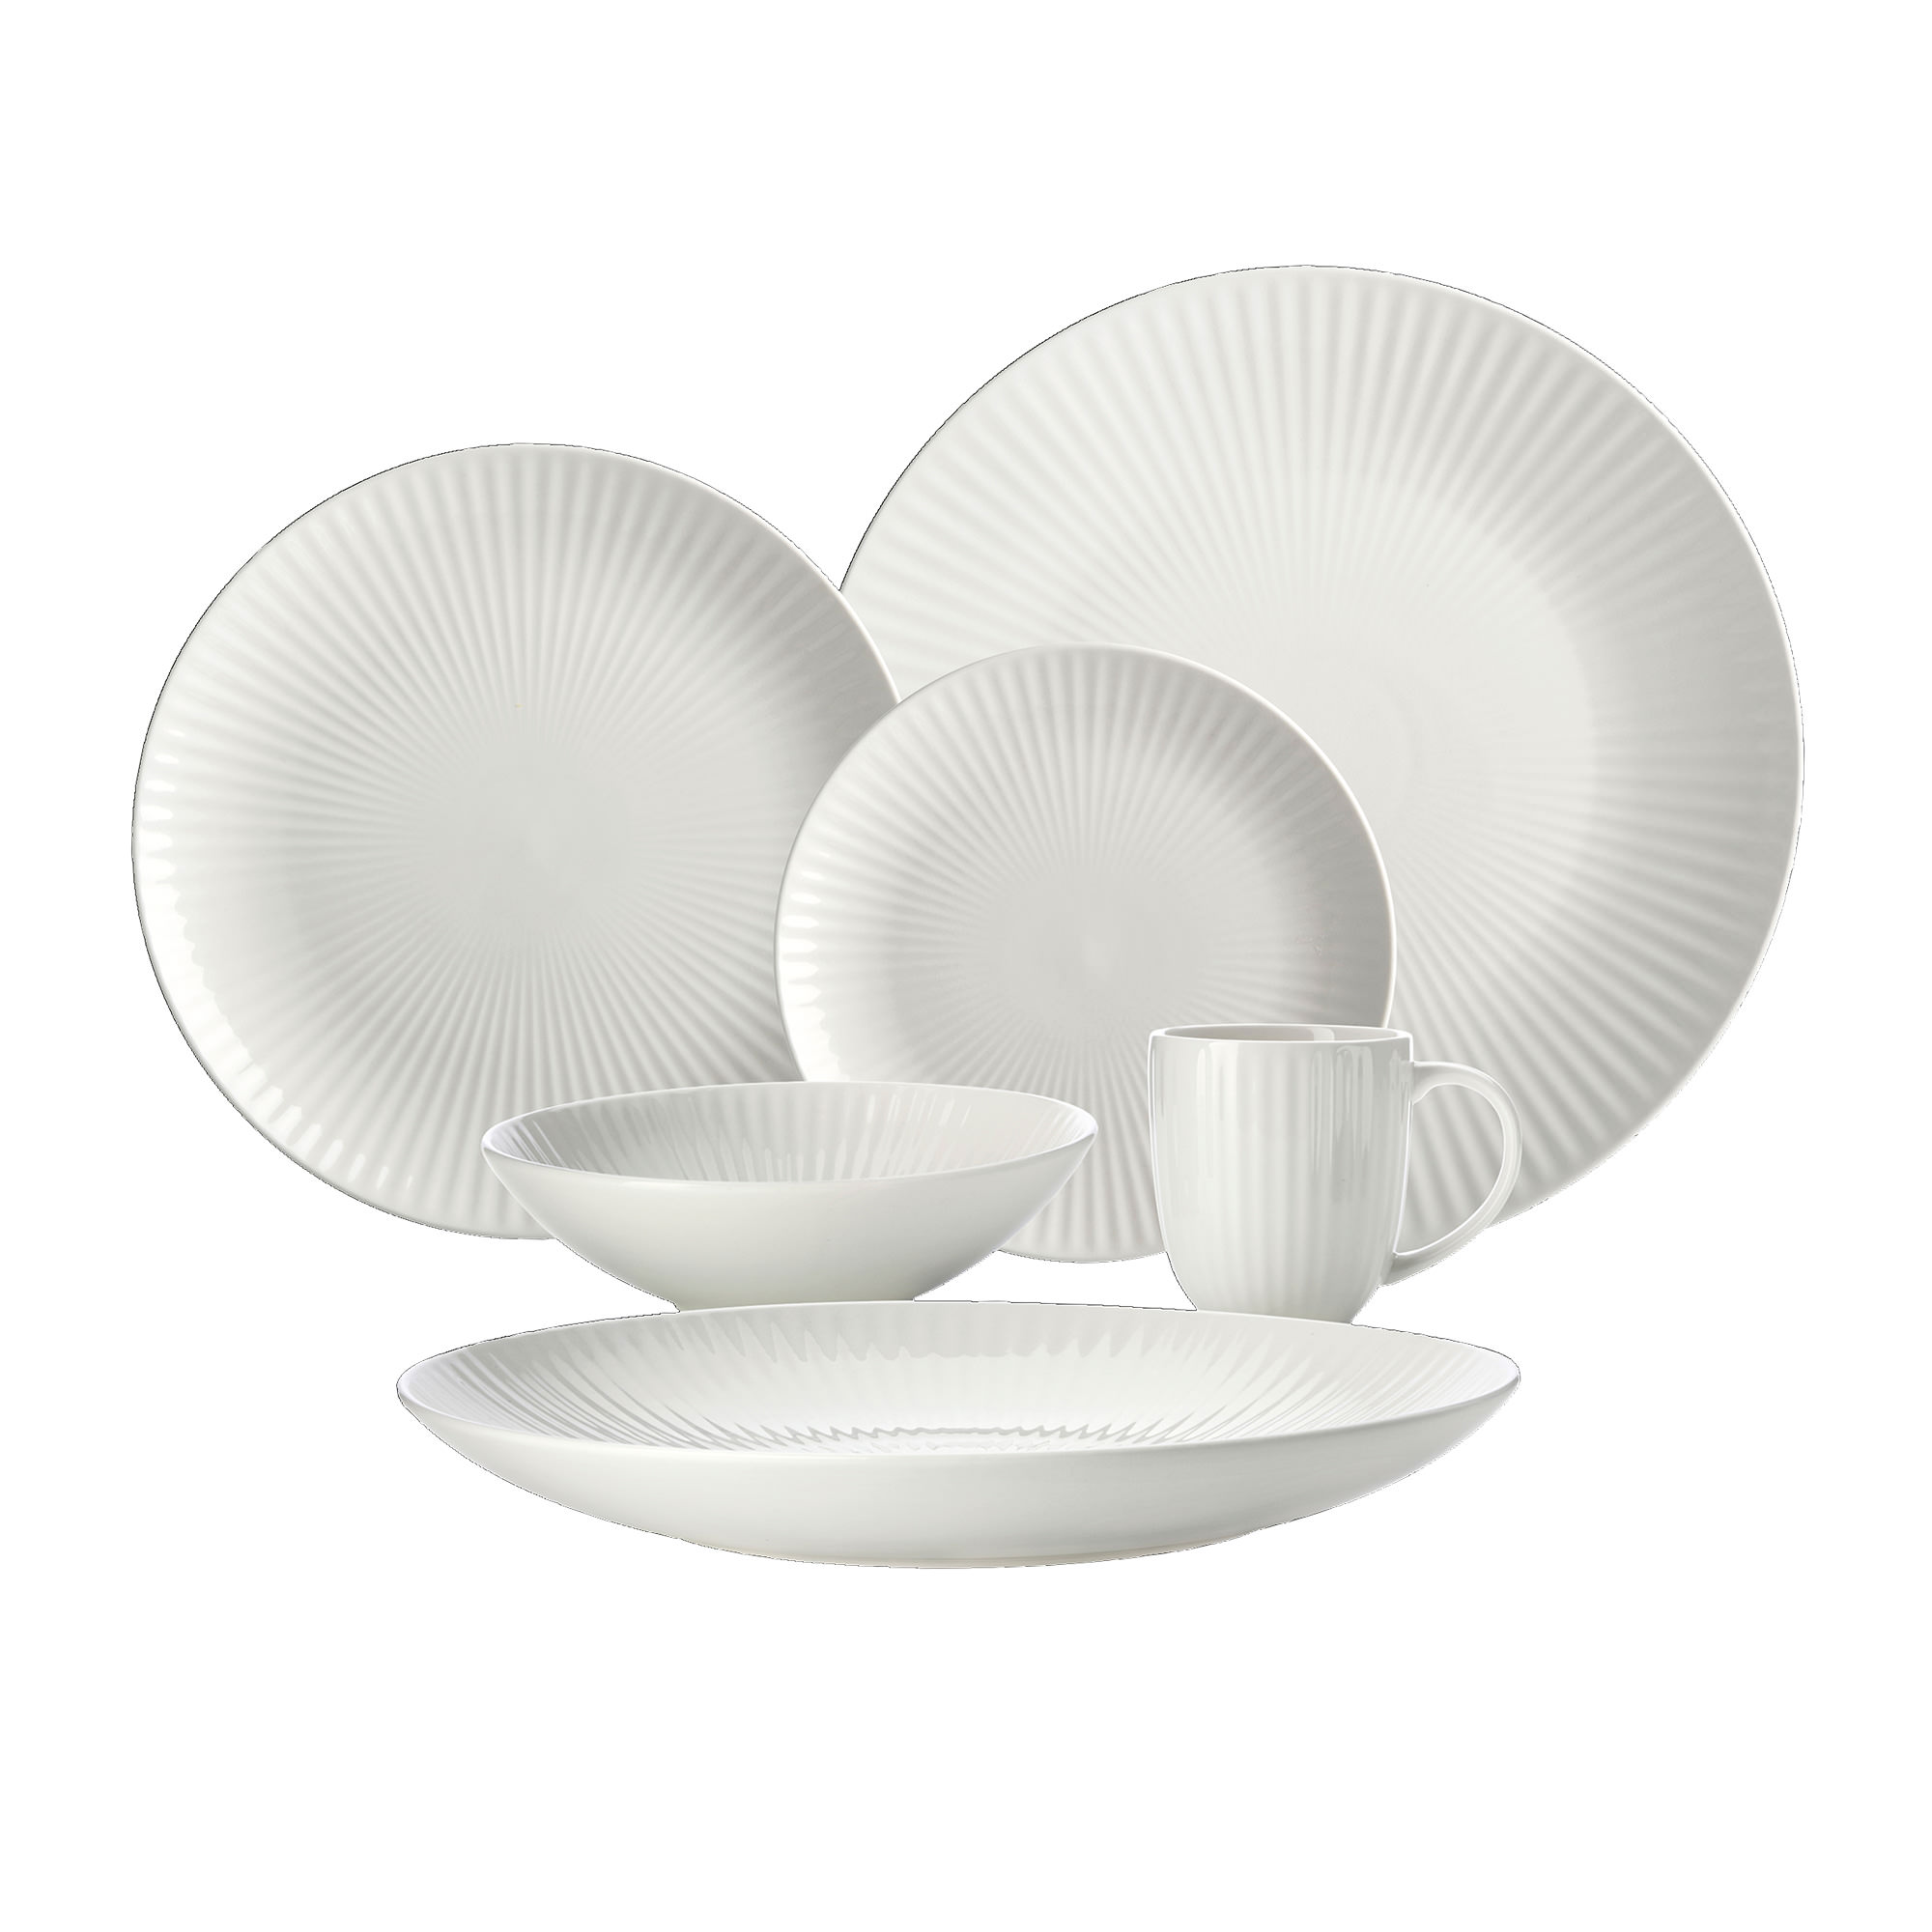 Maxwell & Williams Radiance 18pc Entertainer's Set White